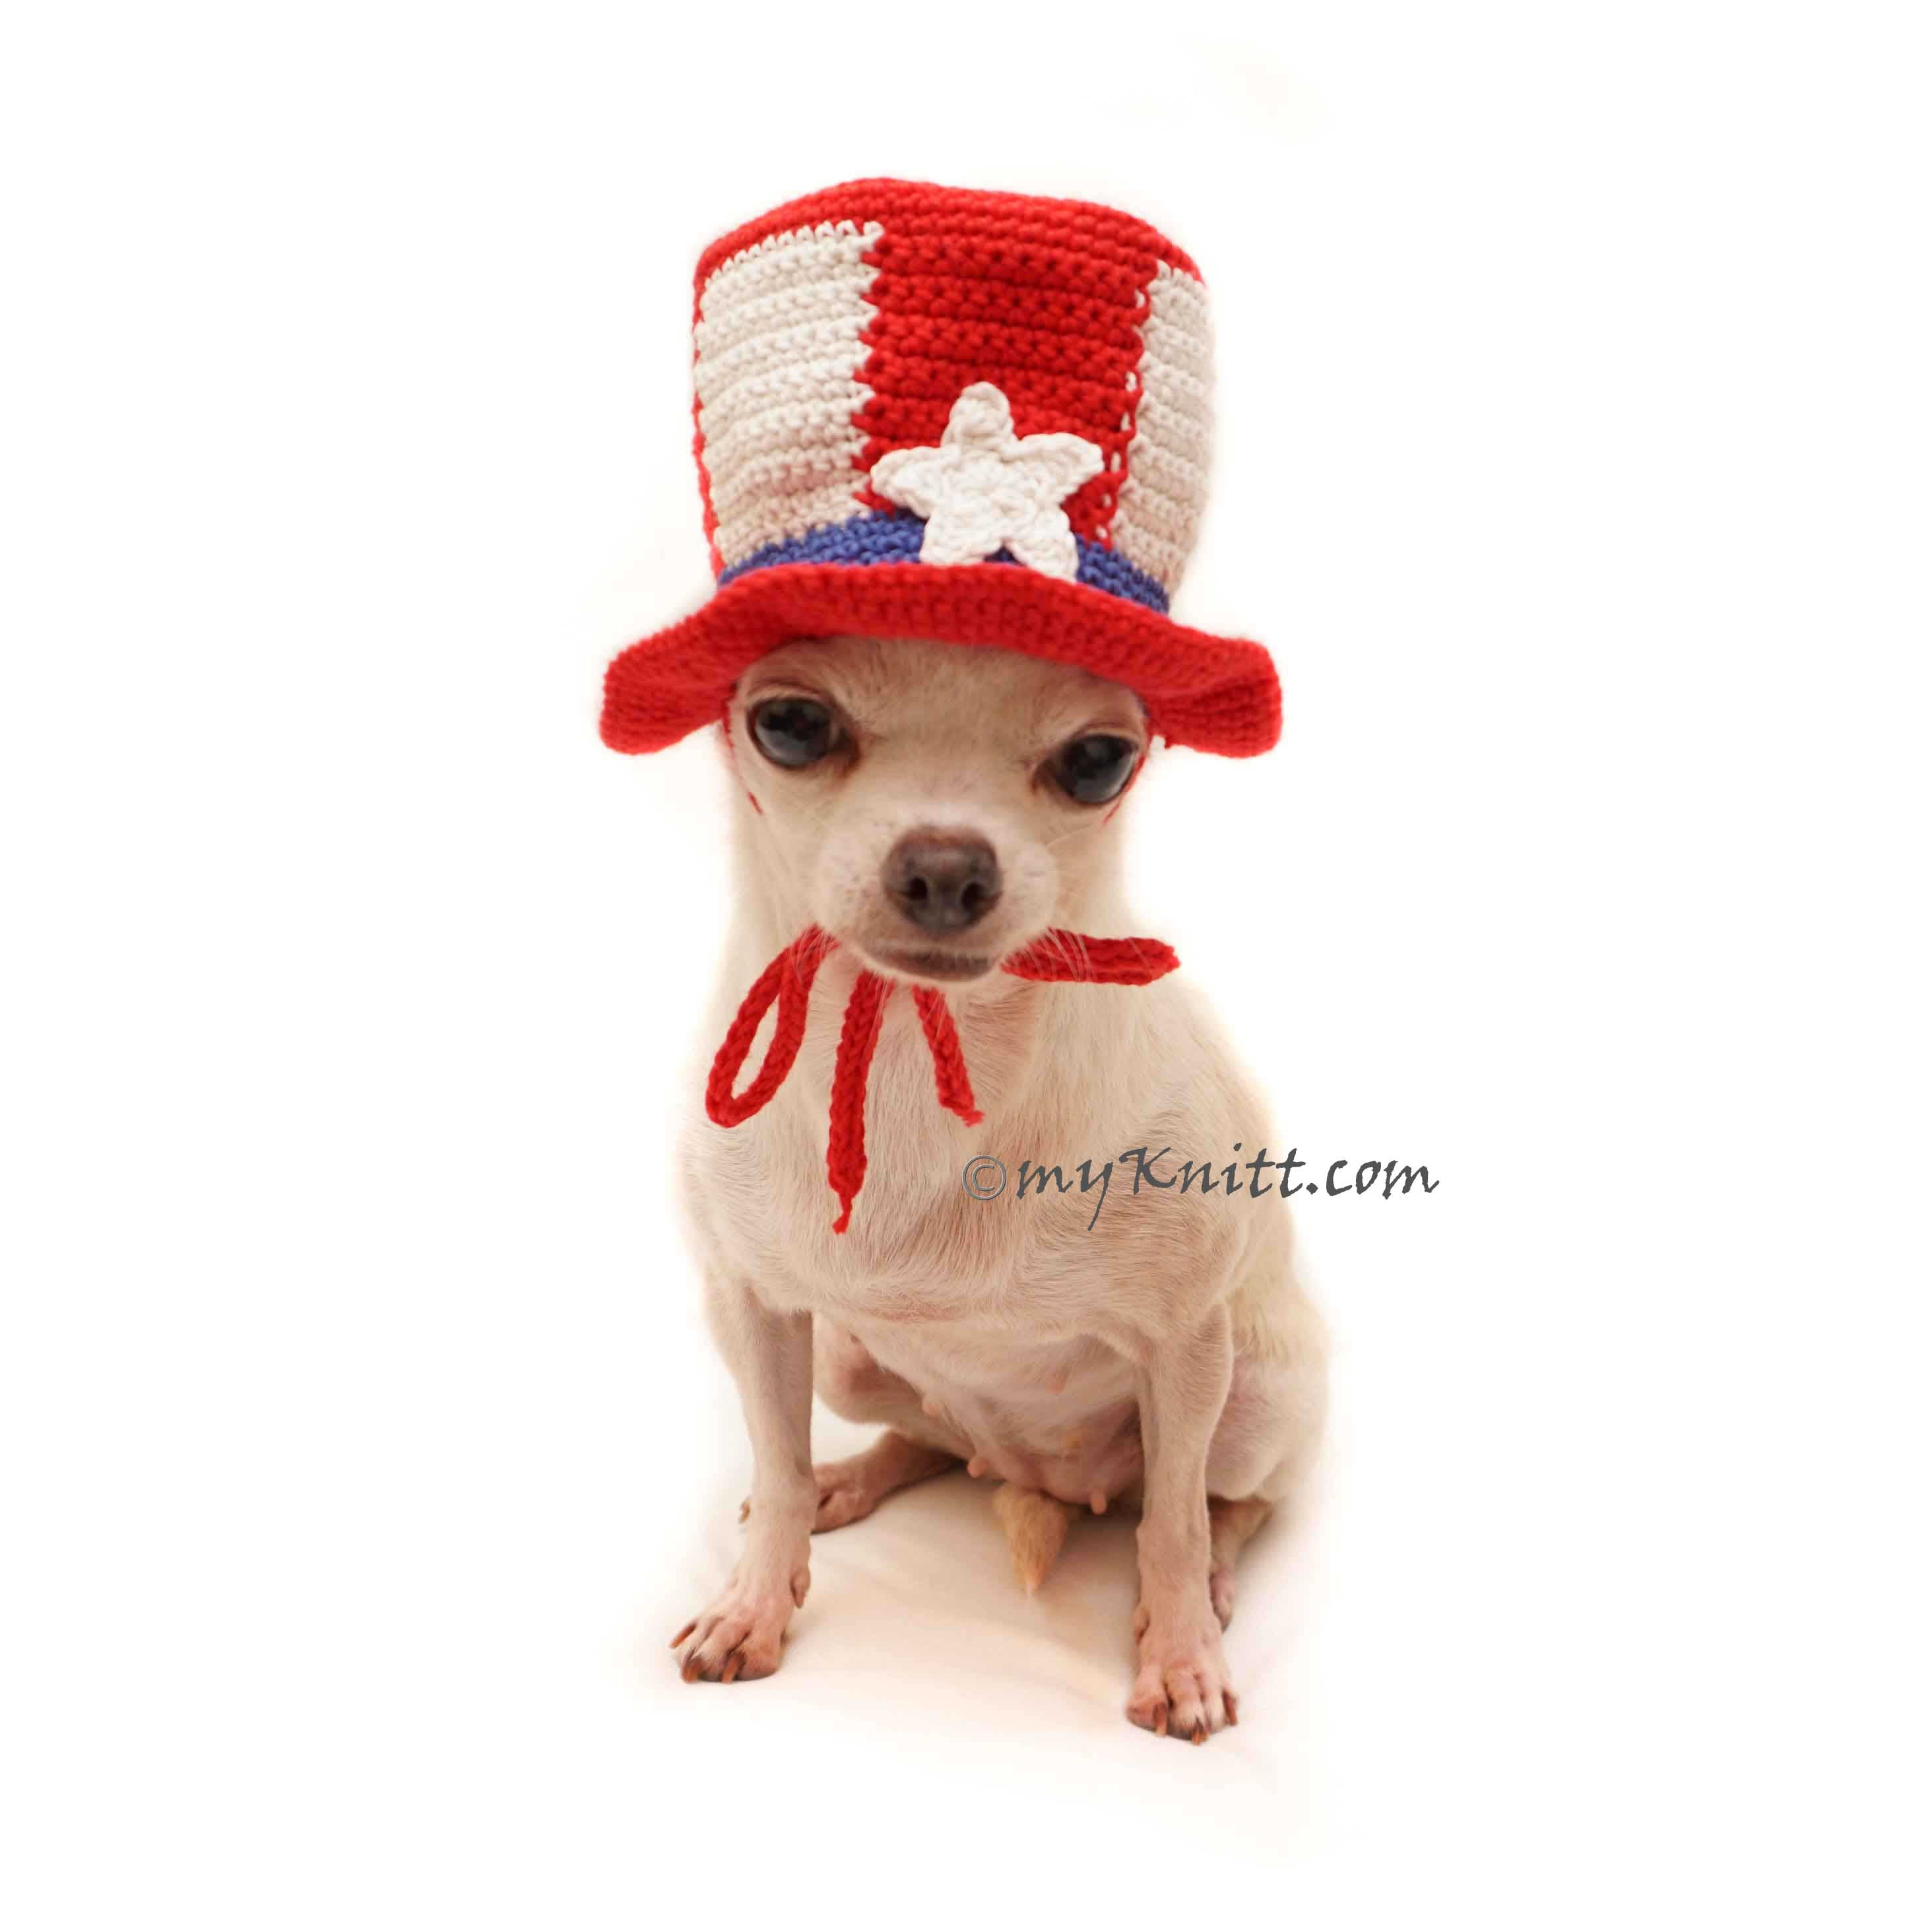 Uncle Sam Top Hat for Pets, Dog Top Hat Red White Blue, Dog Top Hat Crochet DB16 - Myknitt